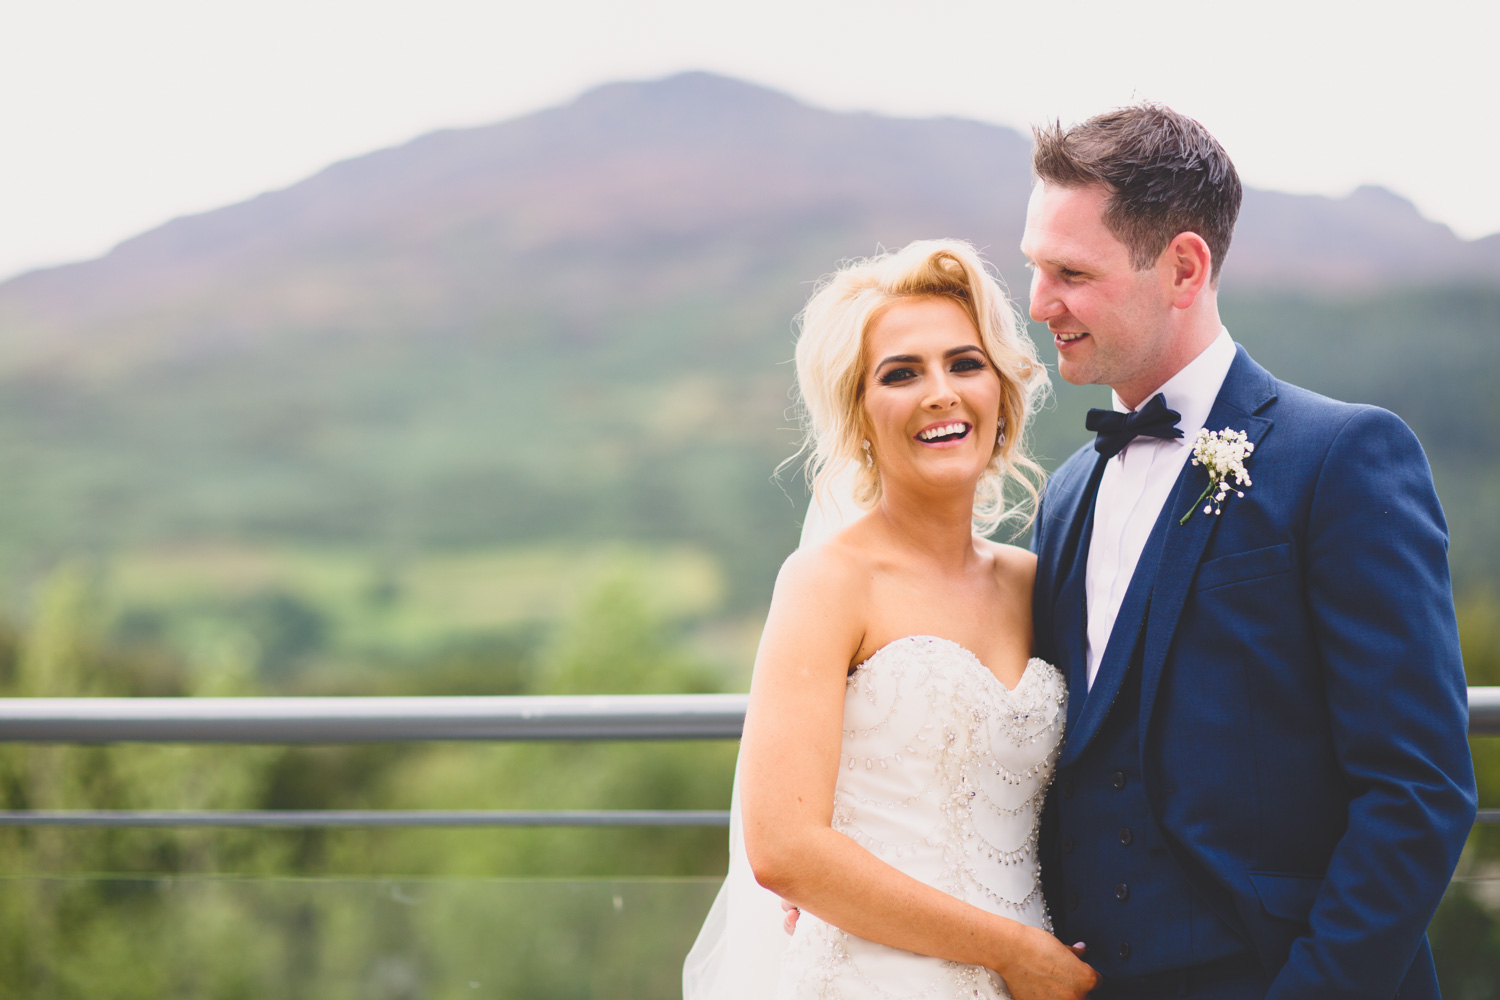 Mark_Barnes_wedding_photographer_Northern_Ireland_Wedding_photography_Carlingford_Four_Seasons_Wedding-44.jpg